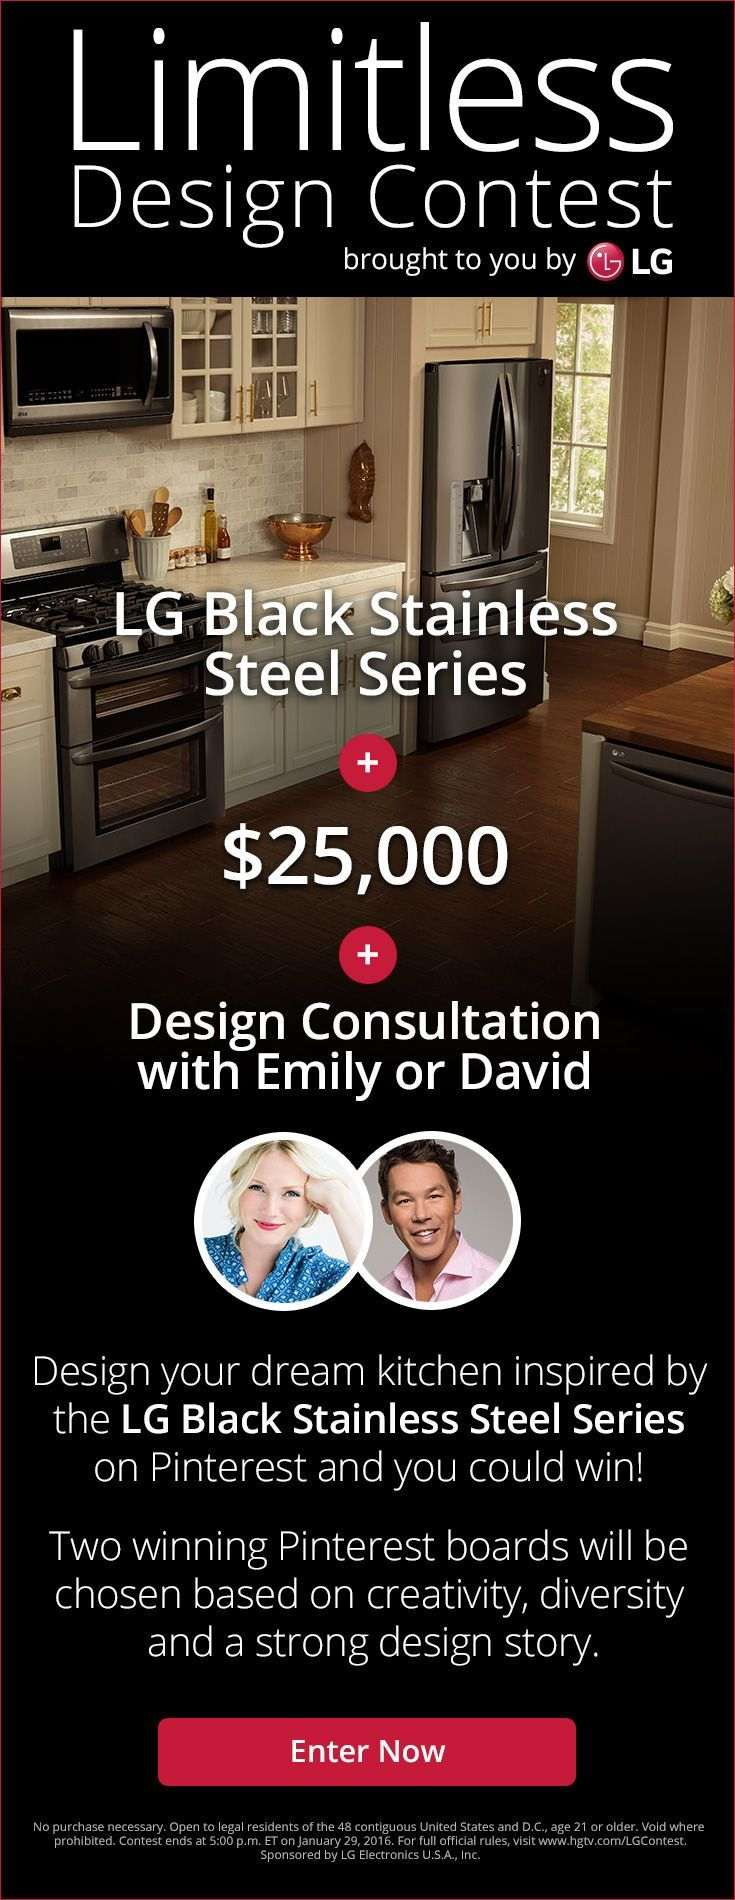 """A month ago I attended a fabulous event with LG Electronics, introducing their new kitchen appliance line featuring an exciting new finish called """"Black Stainless Steel"""".To give kitchen design enthusiasts across the nation a unique opportunity to showcase their Pinterest skills, LG Electronics invites youto take part in the LG Limitless Design Contest and create [...]"""